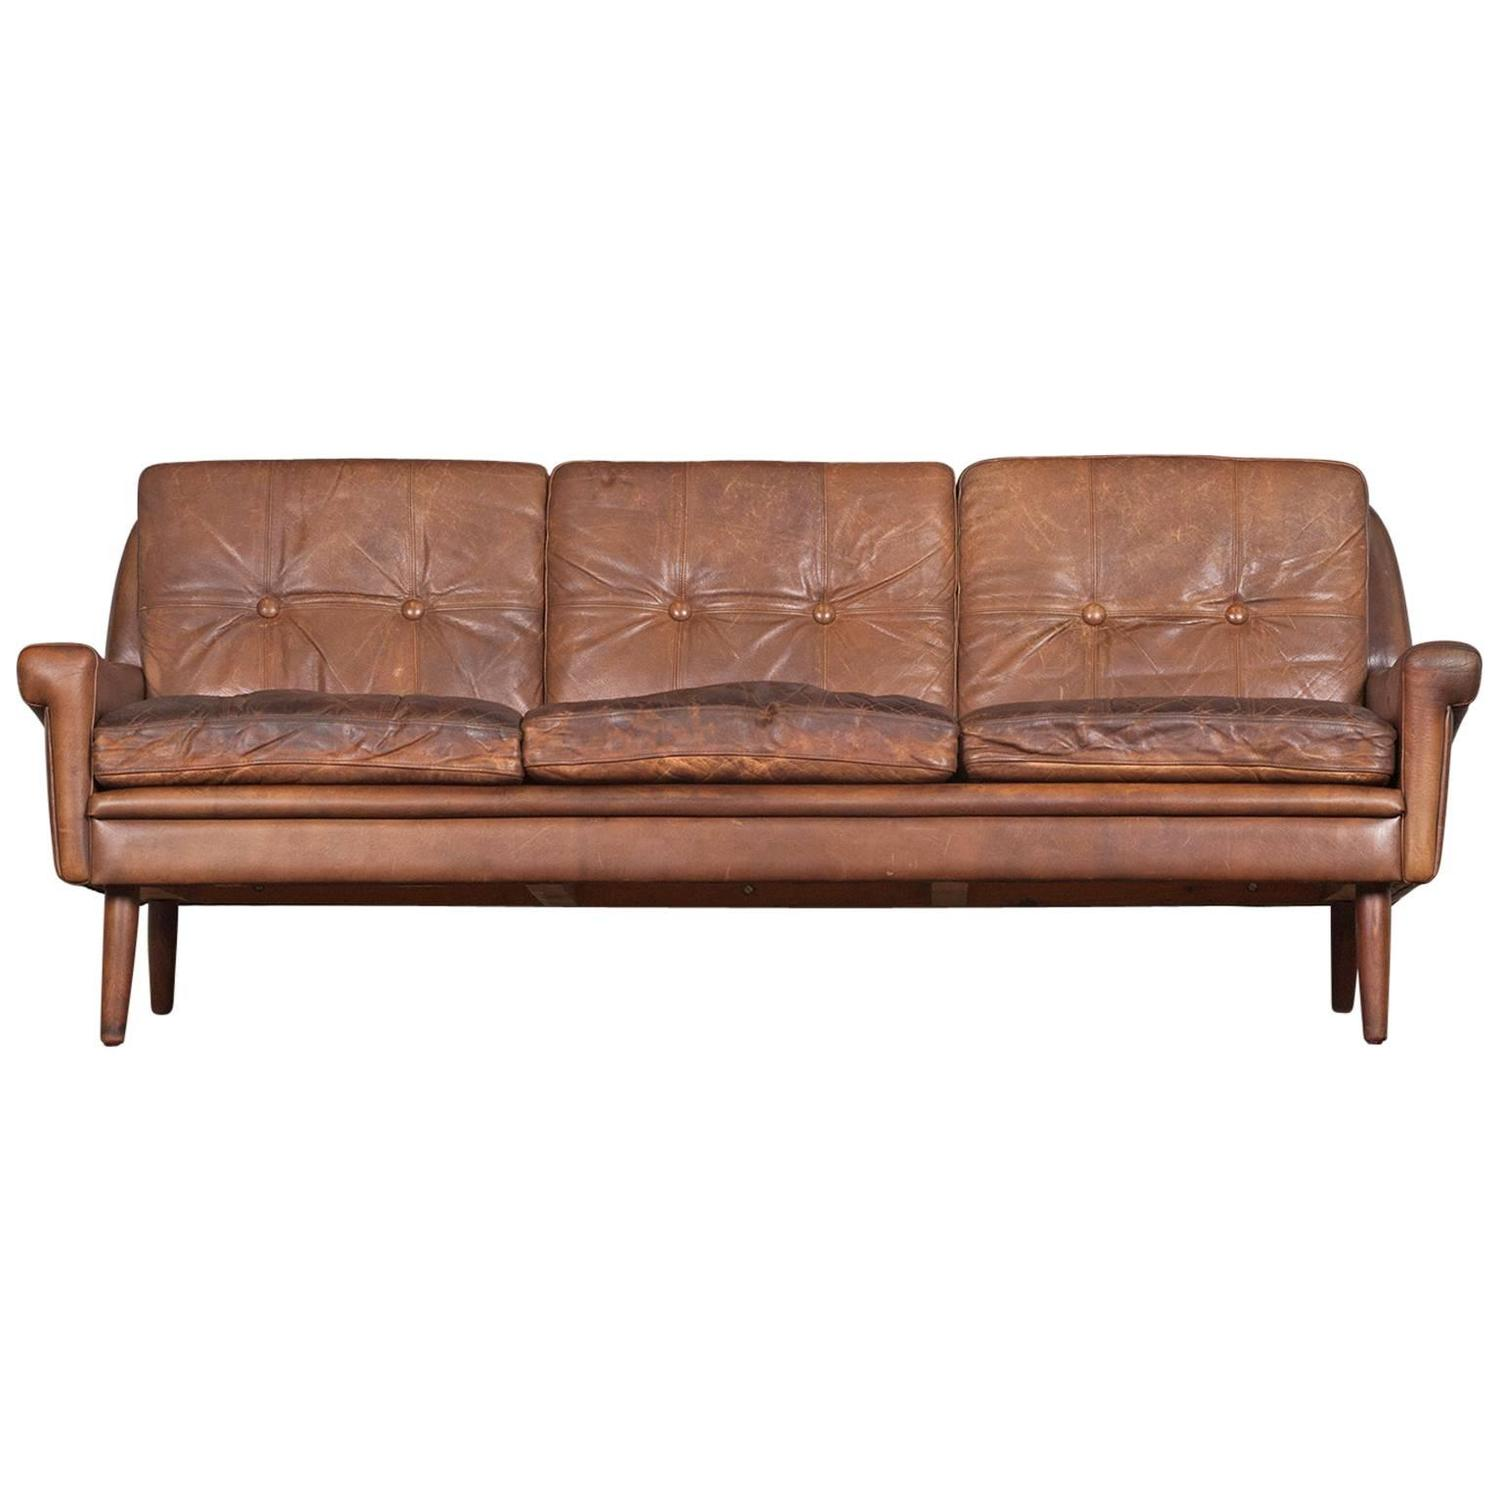 danish three seater sofa in light brown leather by skipper. Black Bedroom Furniture Sets. Home Design Ideas